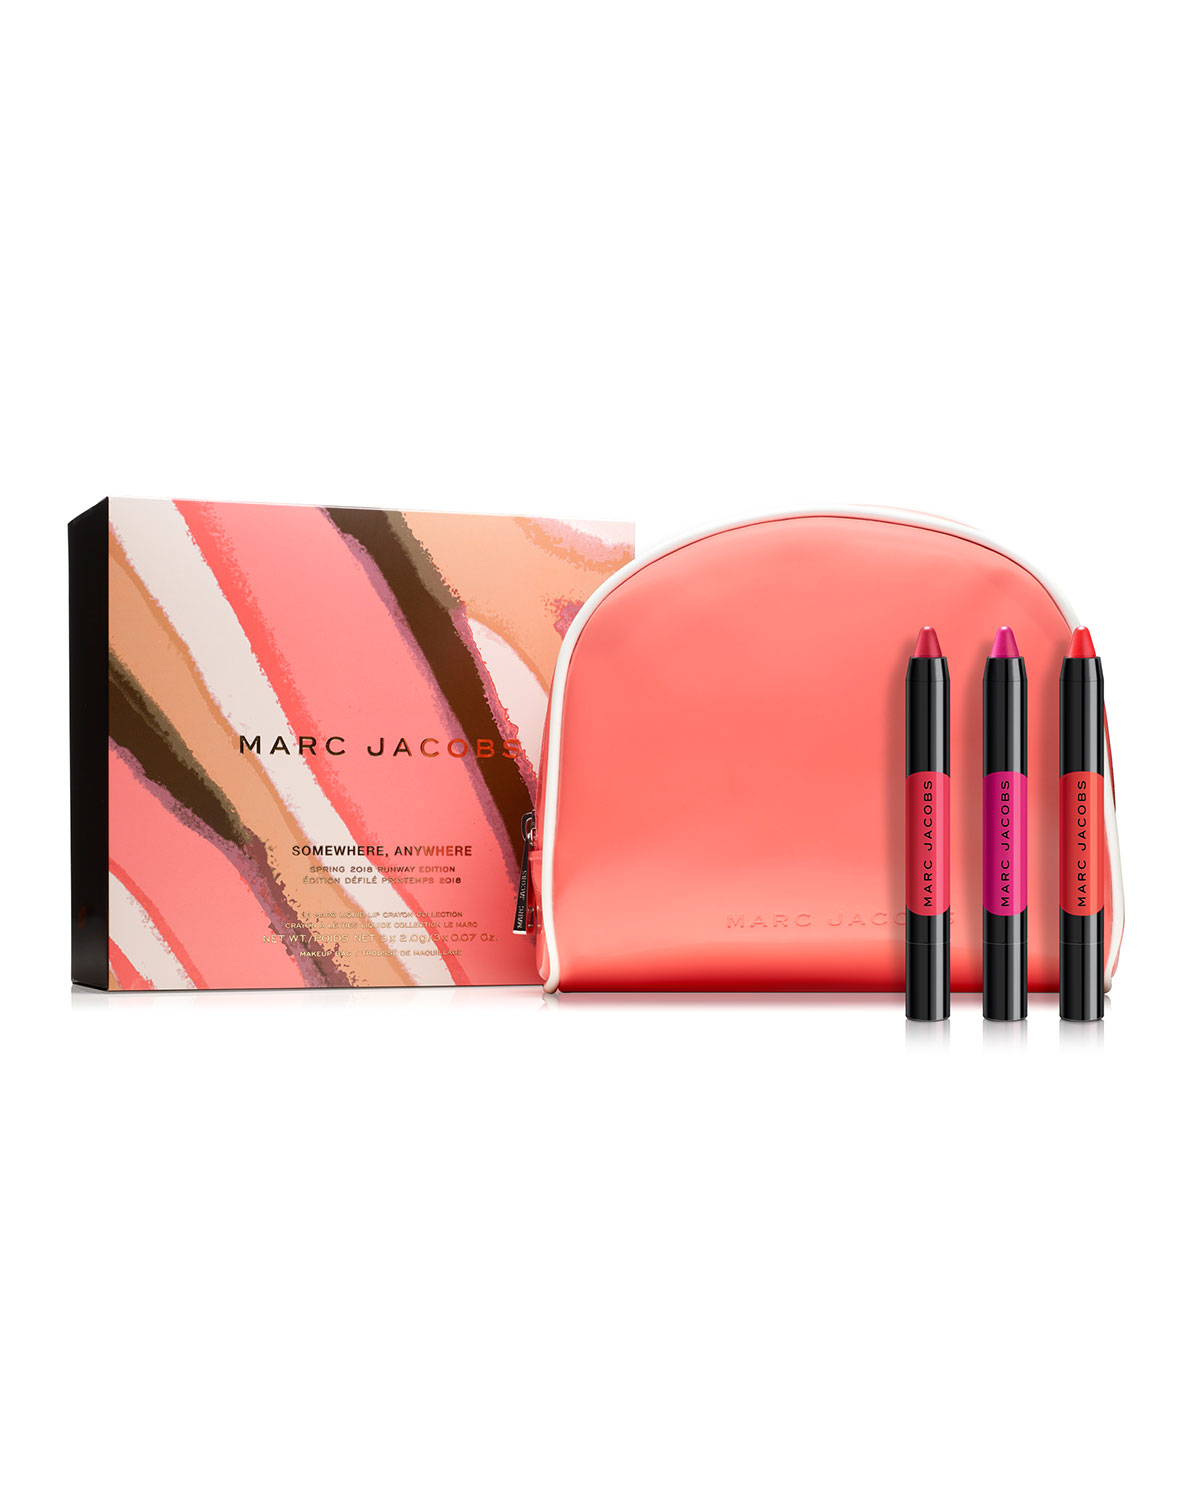 Marc Jacobs Somewhere, Anywhere Le Marc Liquid Lip Crayon Collection ($88 Value)